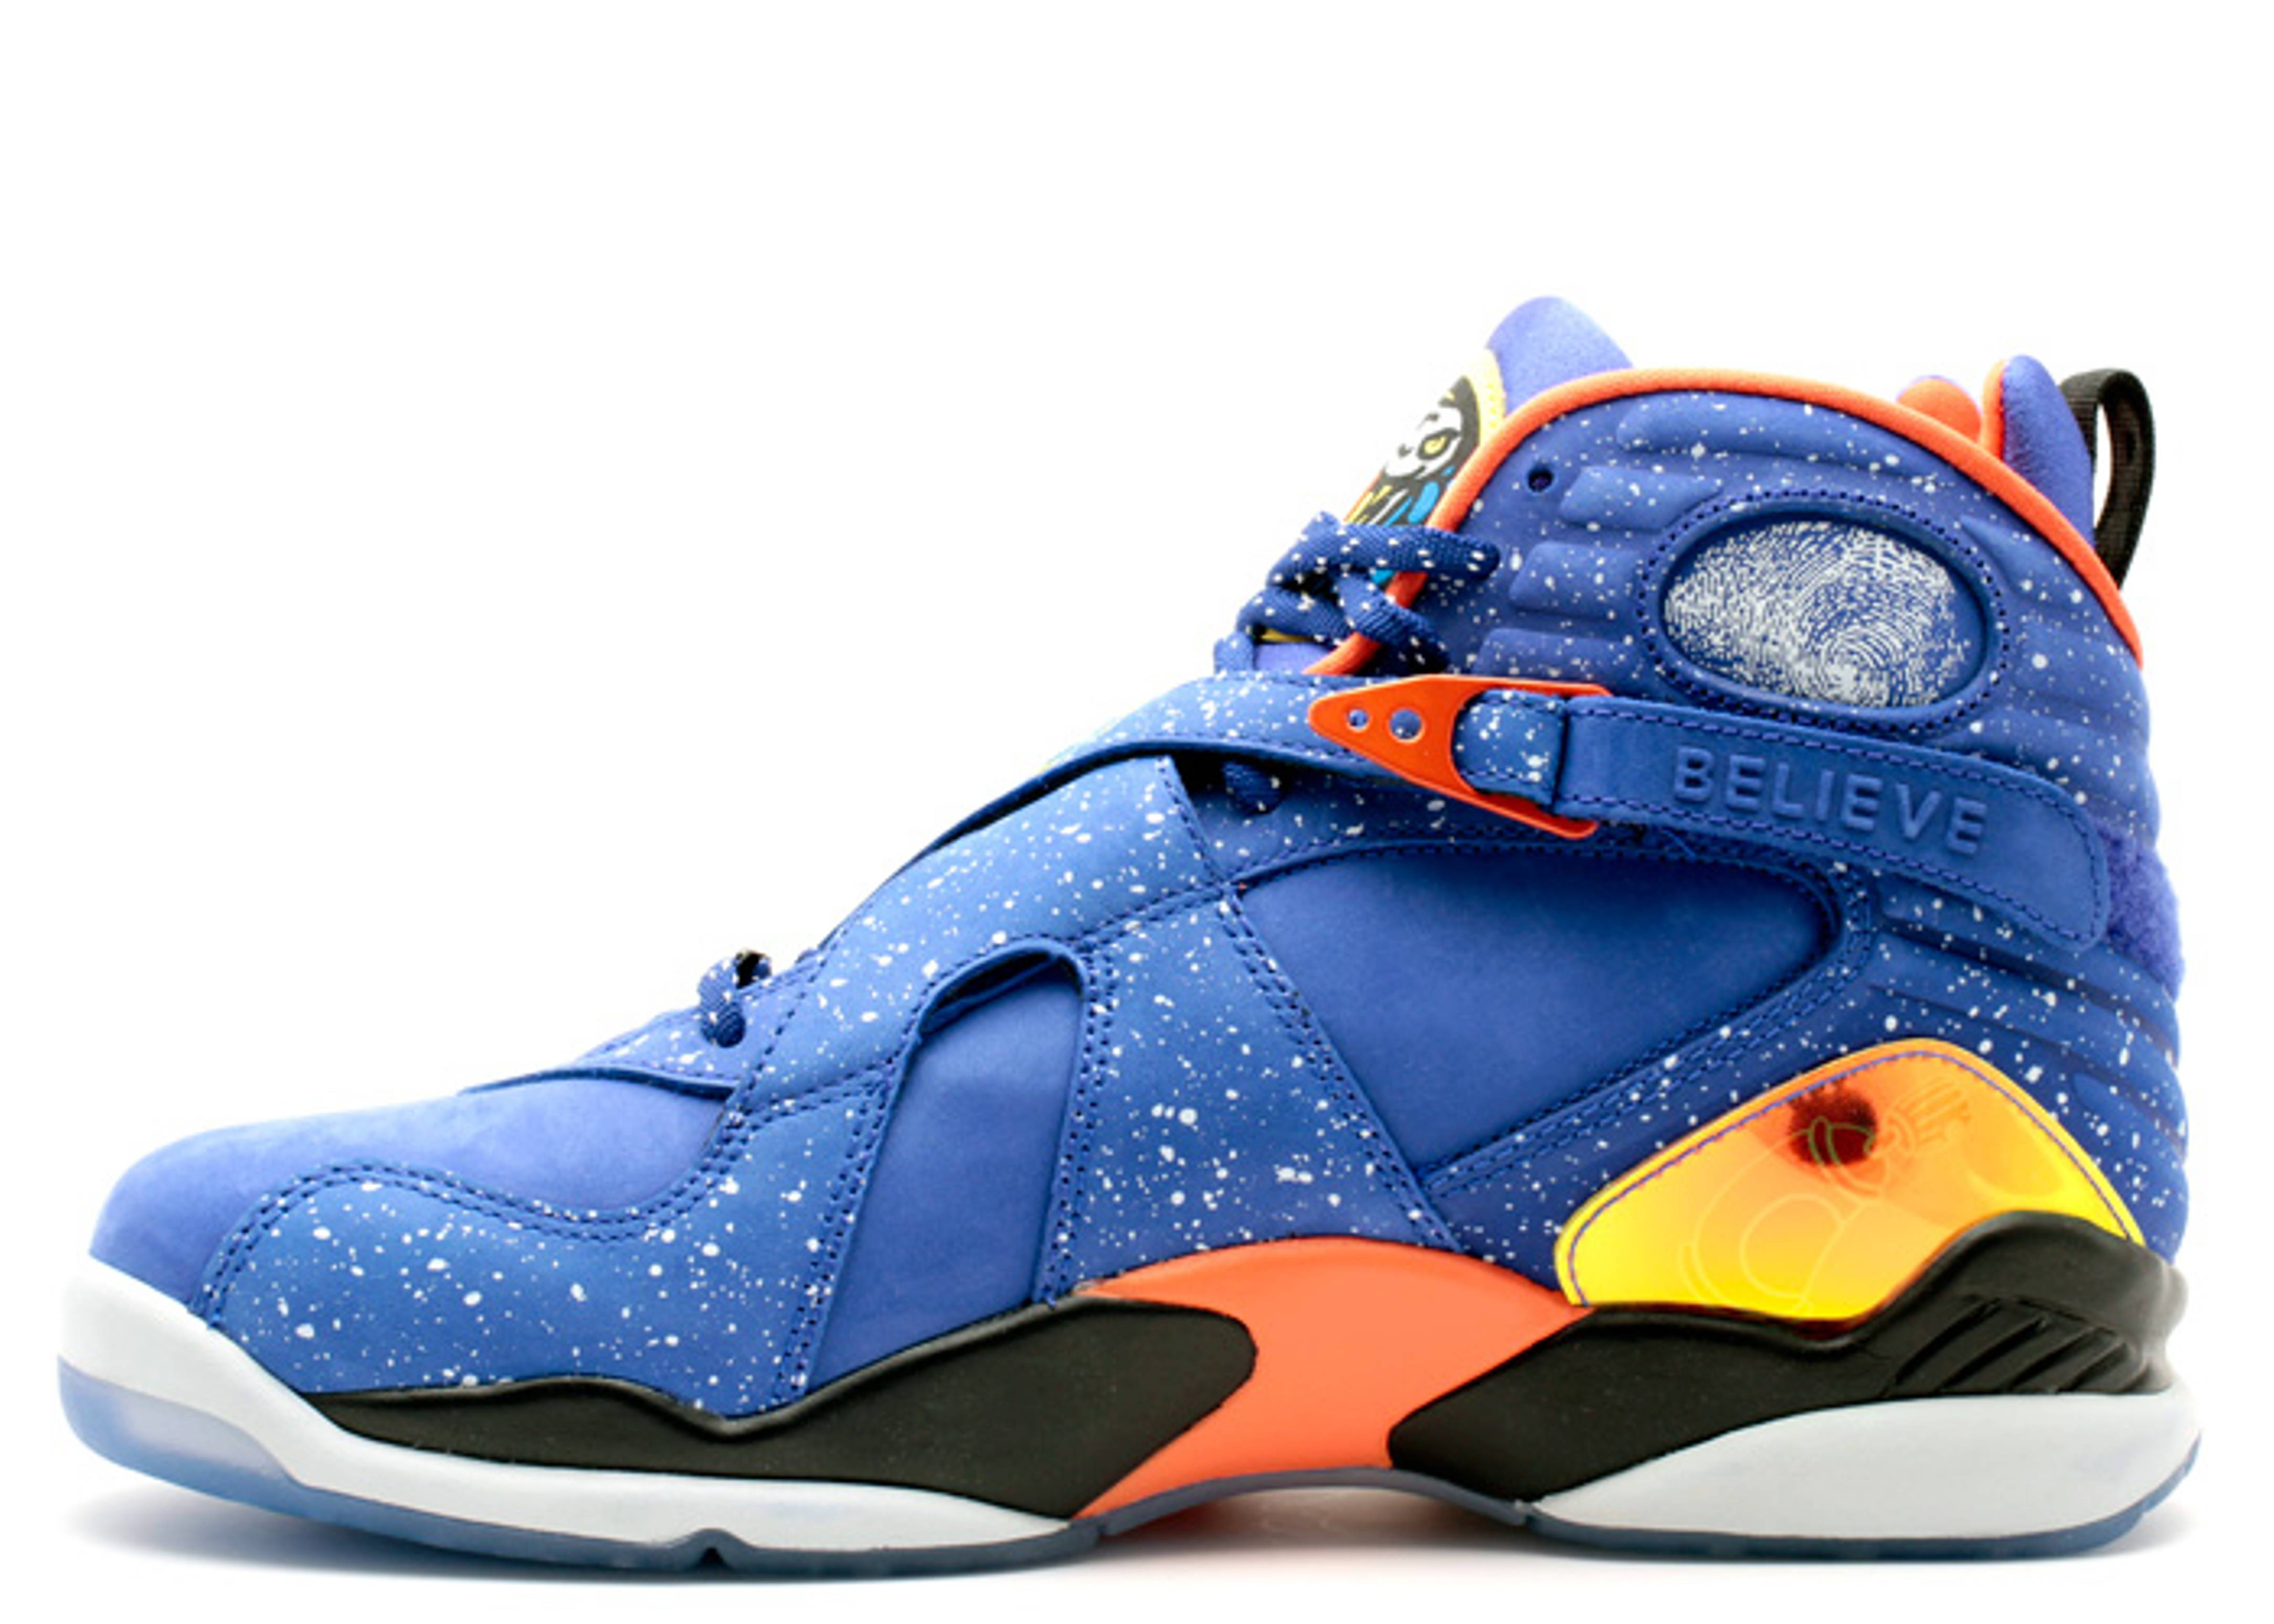 9d7dcb93276 Air Jordan 8 Retro Db